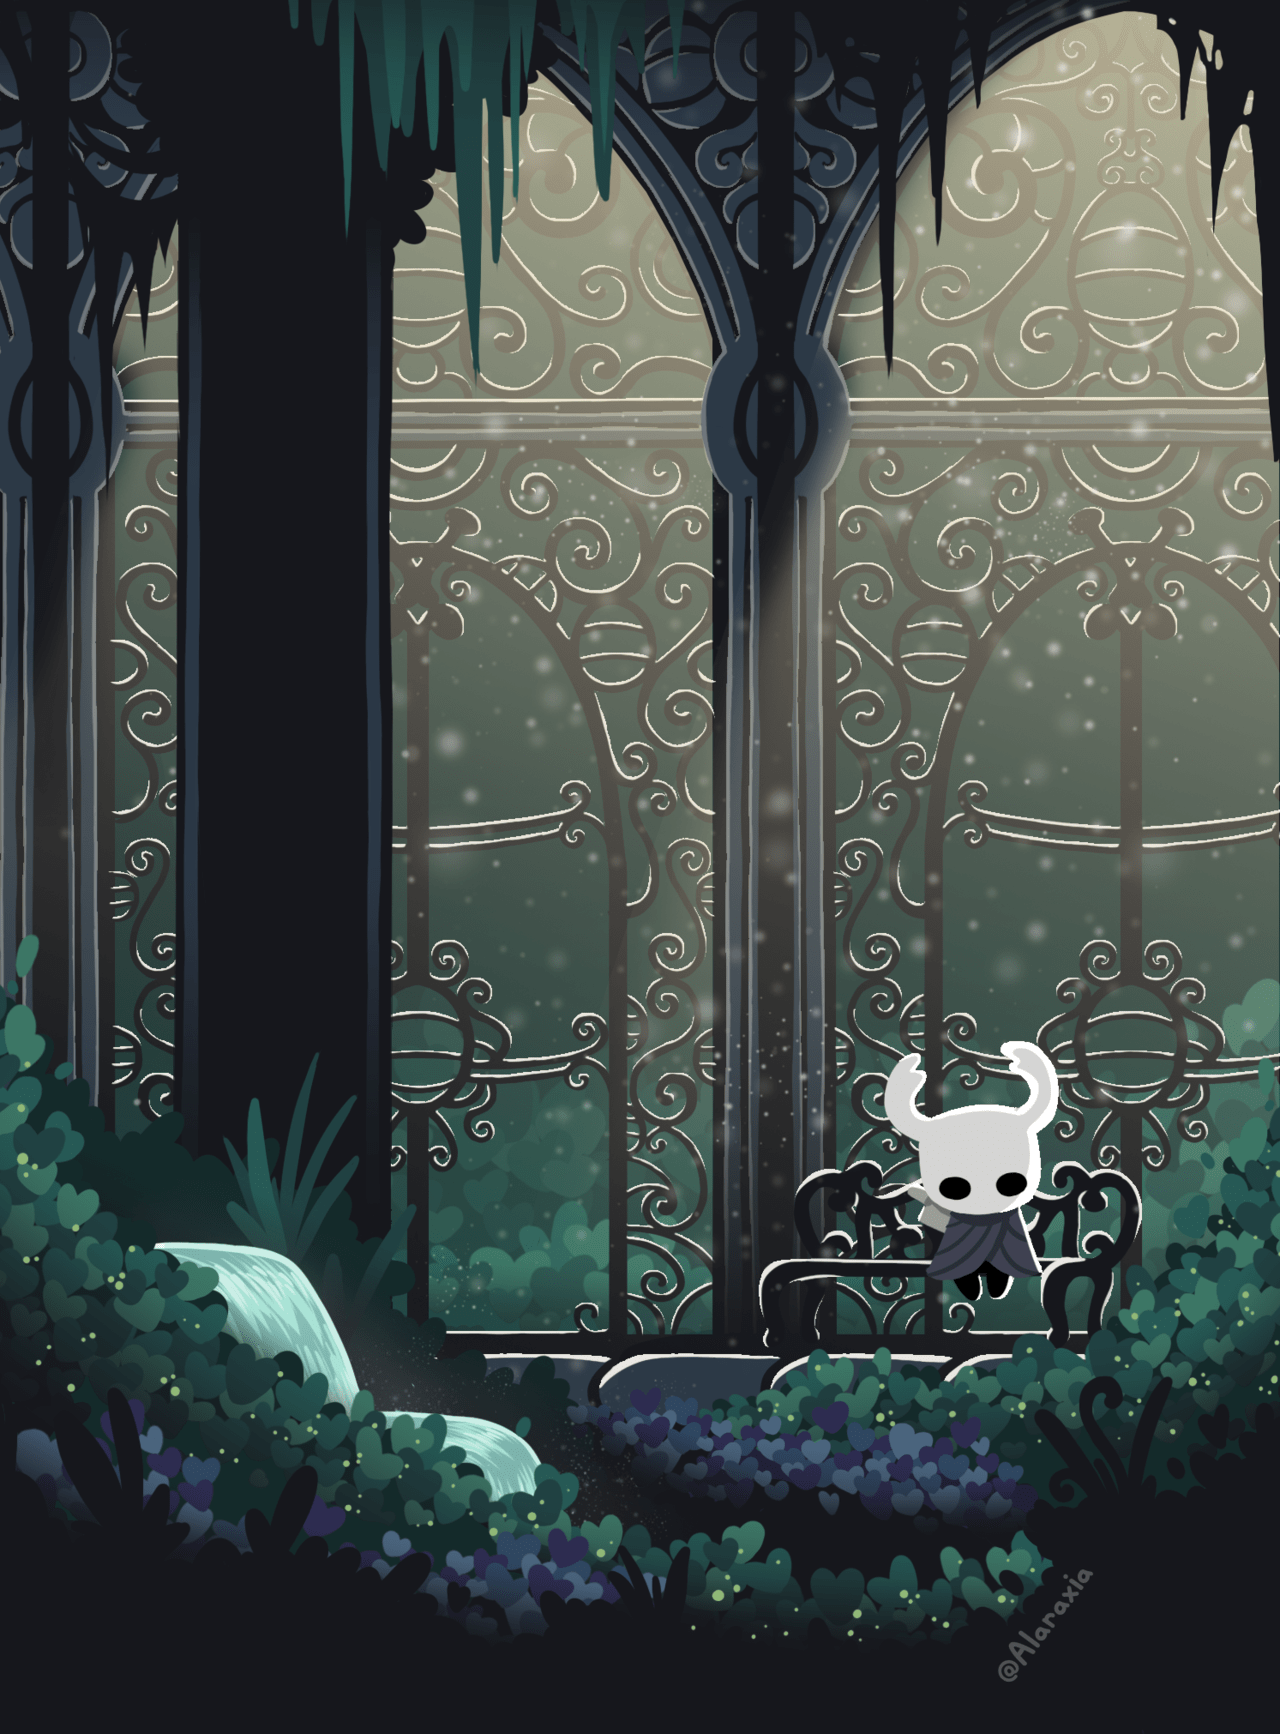 Queens Garden Hollow Knight : queens, garden, hollow, knight, Alaraxia, Elegy, Hallownest